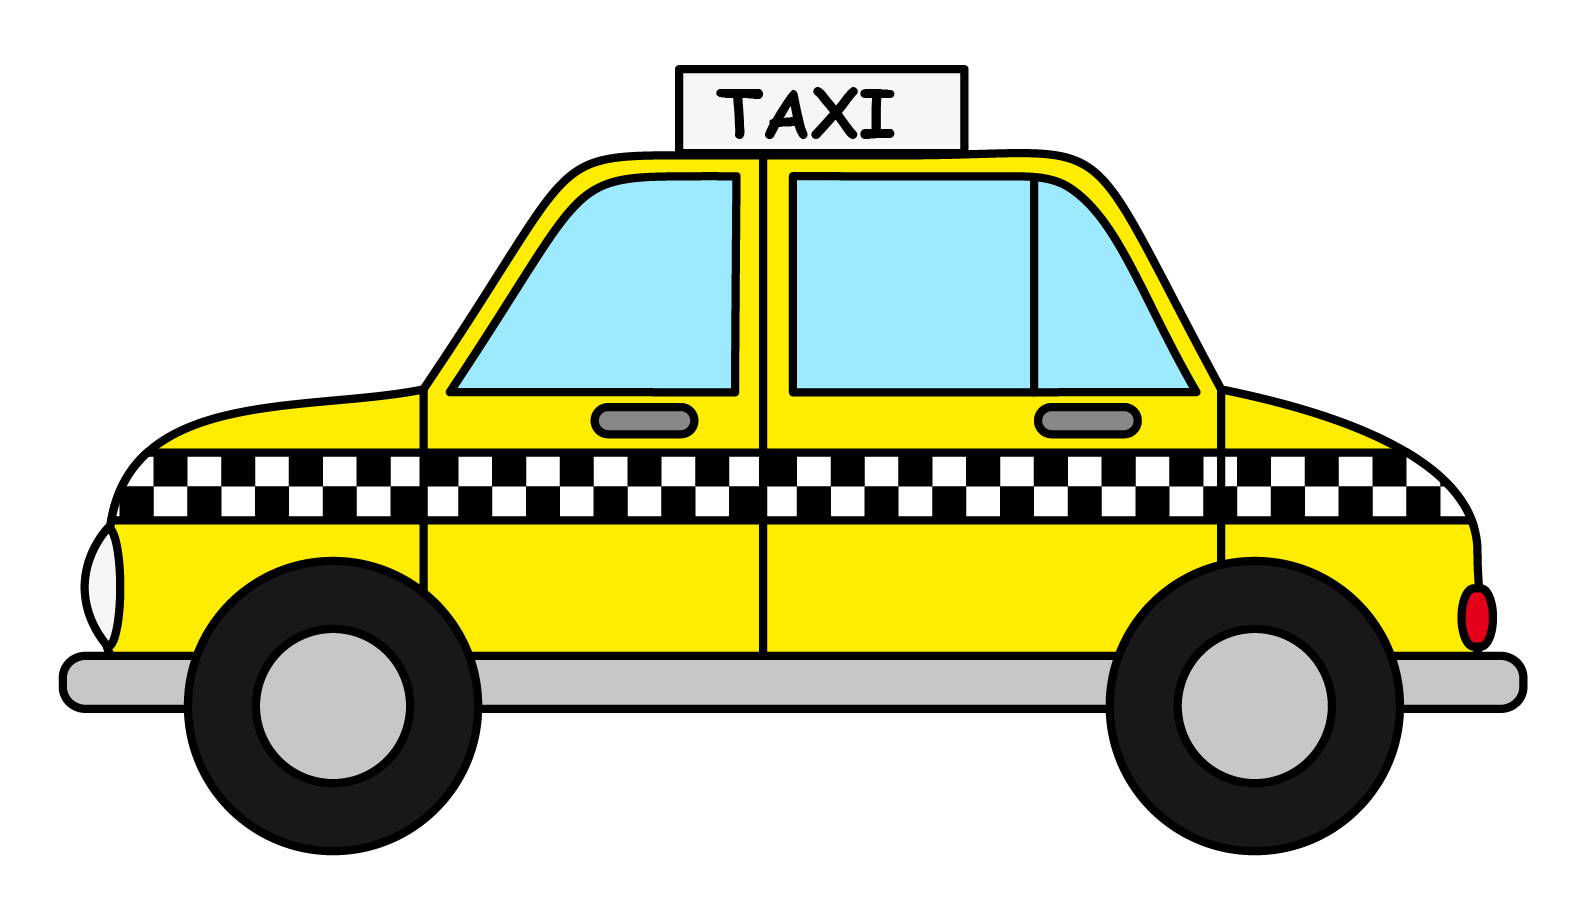 Free to Use & Public Domain Taxi Clip Art.